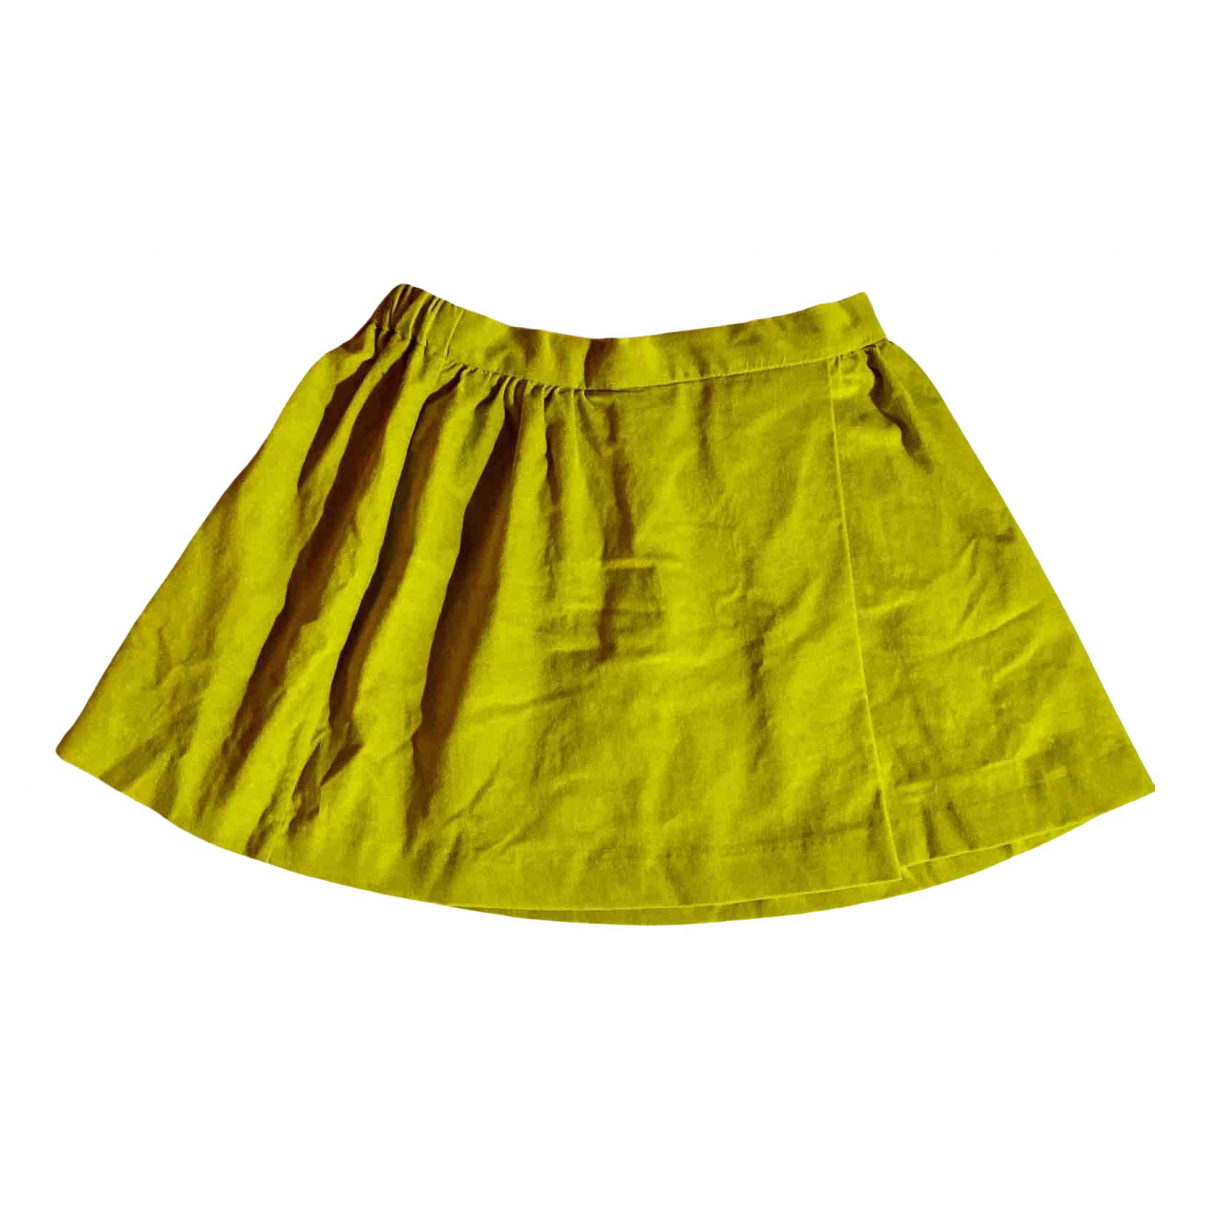 Massimo Dutti N Green Cotton skirt for Kids 10 years - up to 142cm FR